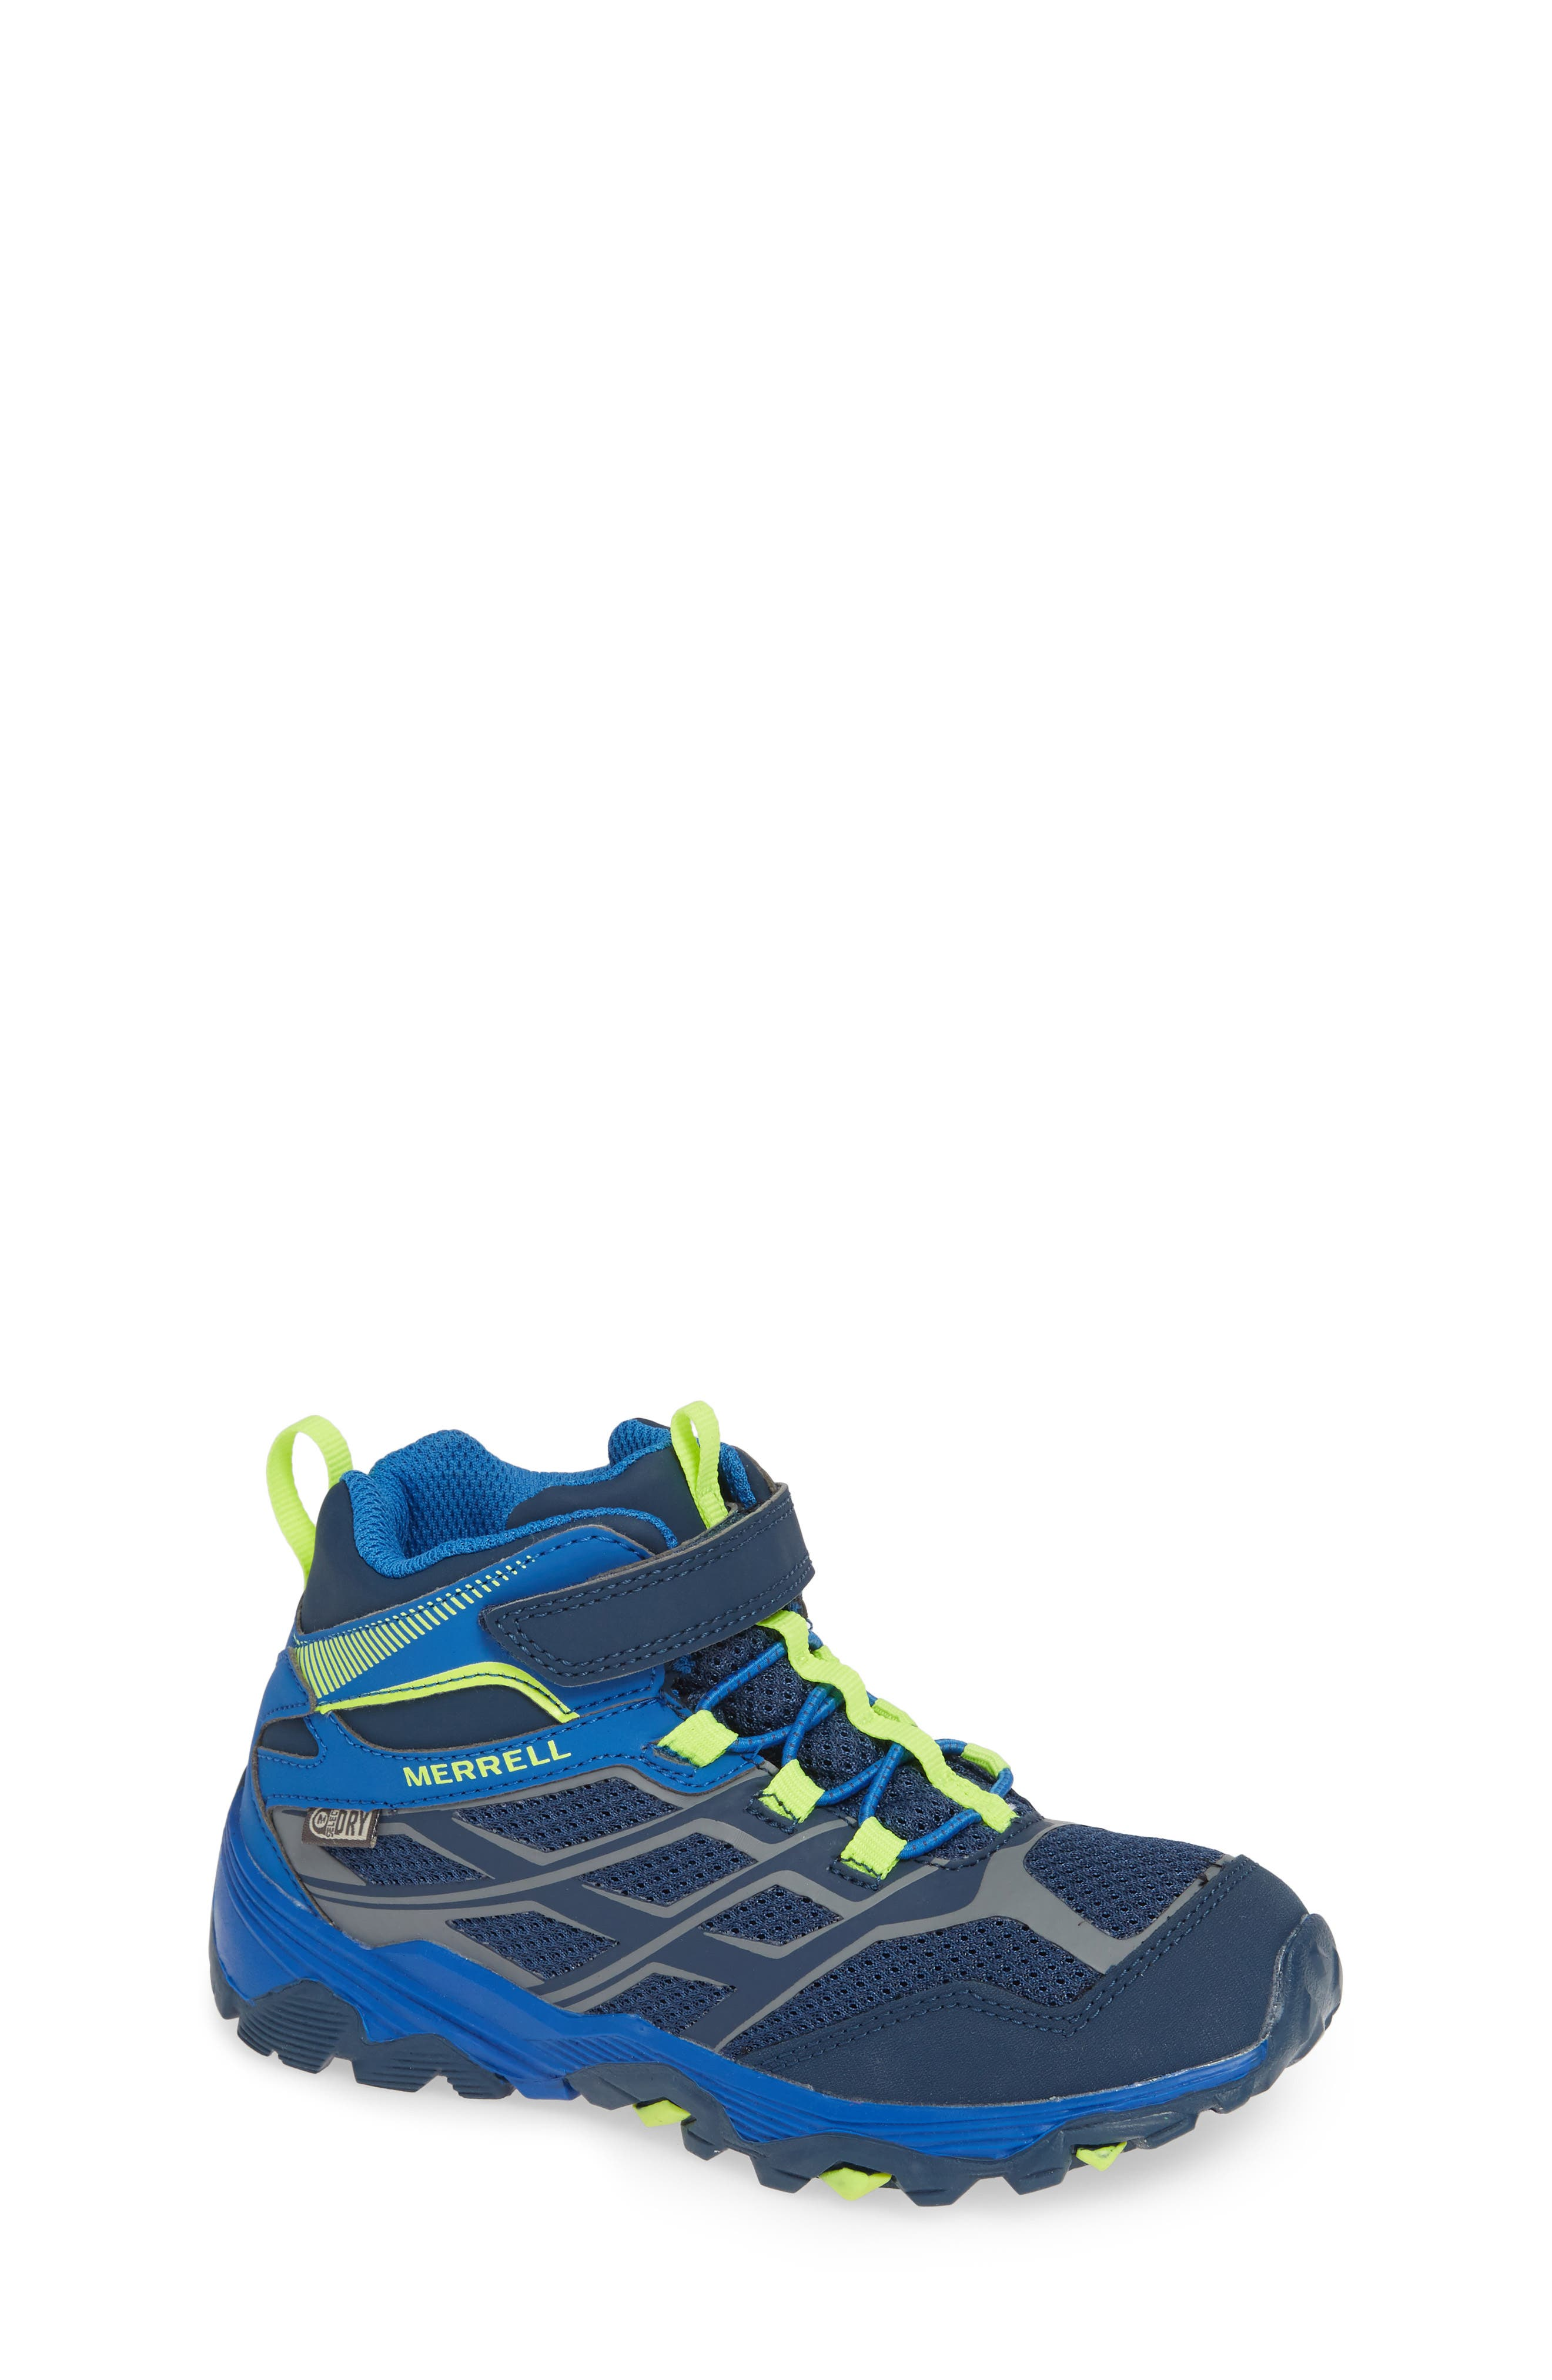 Moab FST Mid Top Waterproof Sneaker Boot,                             Main thumbnail 1, color,                             NAVY/ COBALT